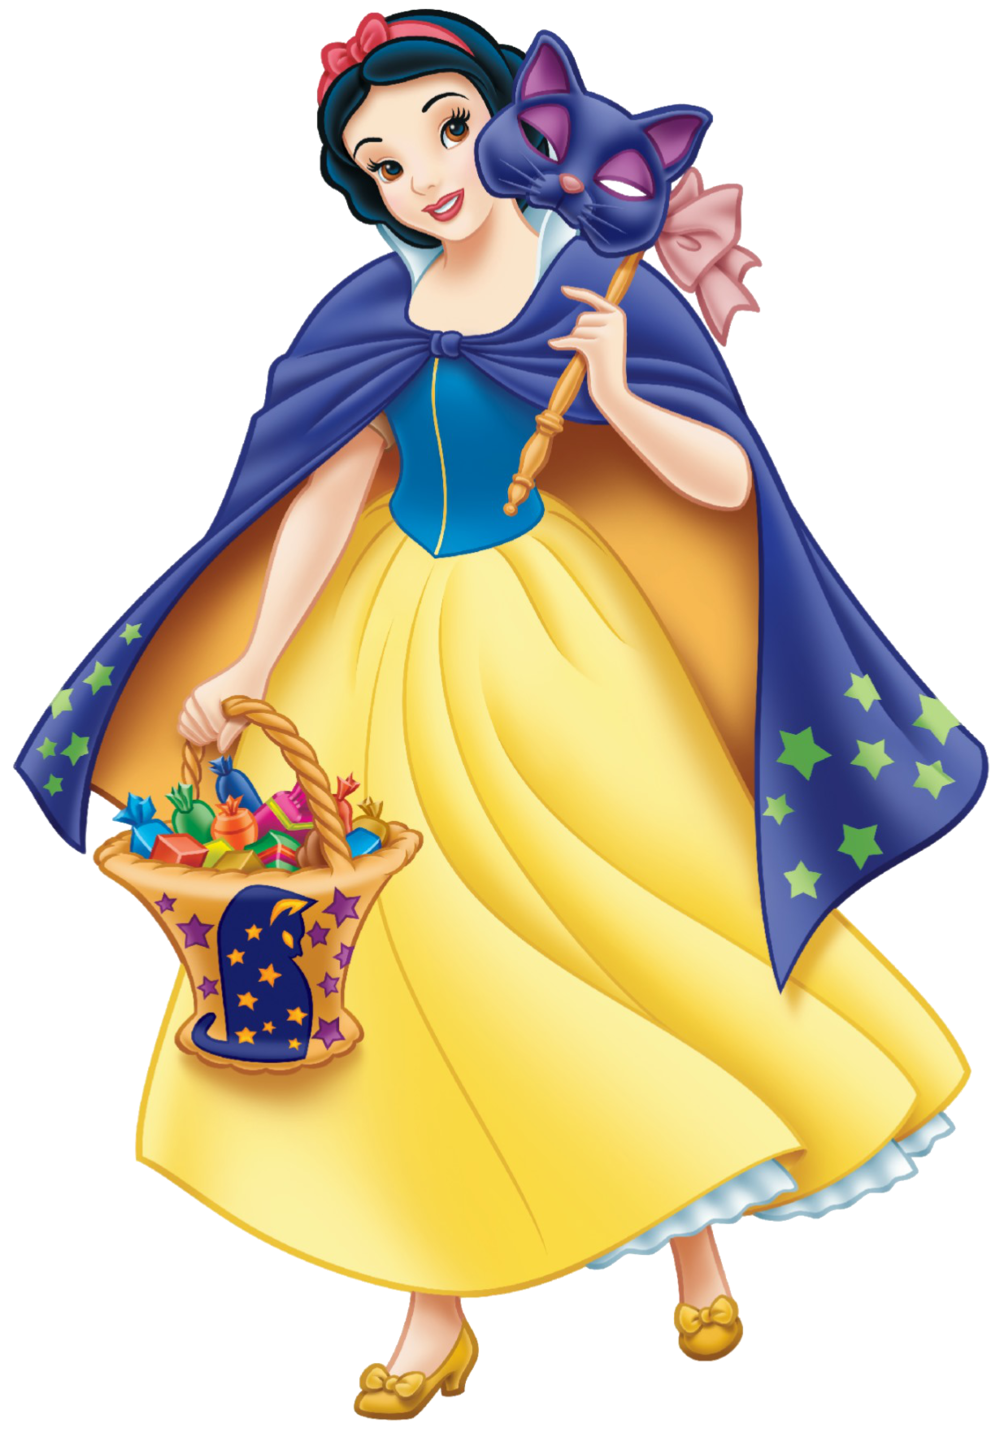 Snow White Character Gallery Snow White Characters Snow White Snow White Queen